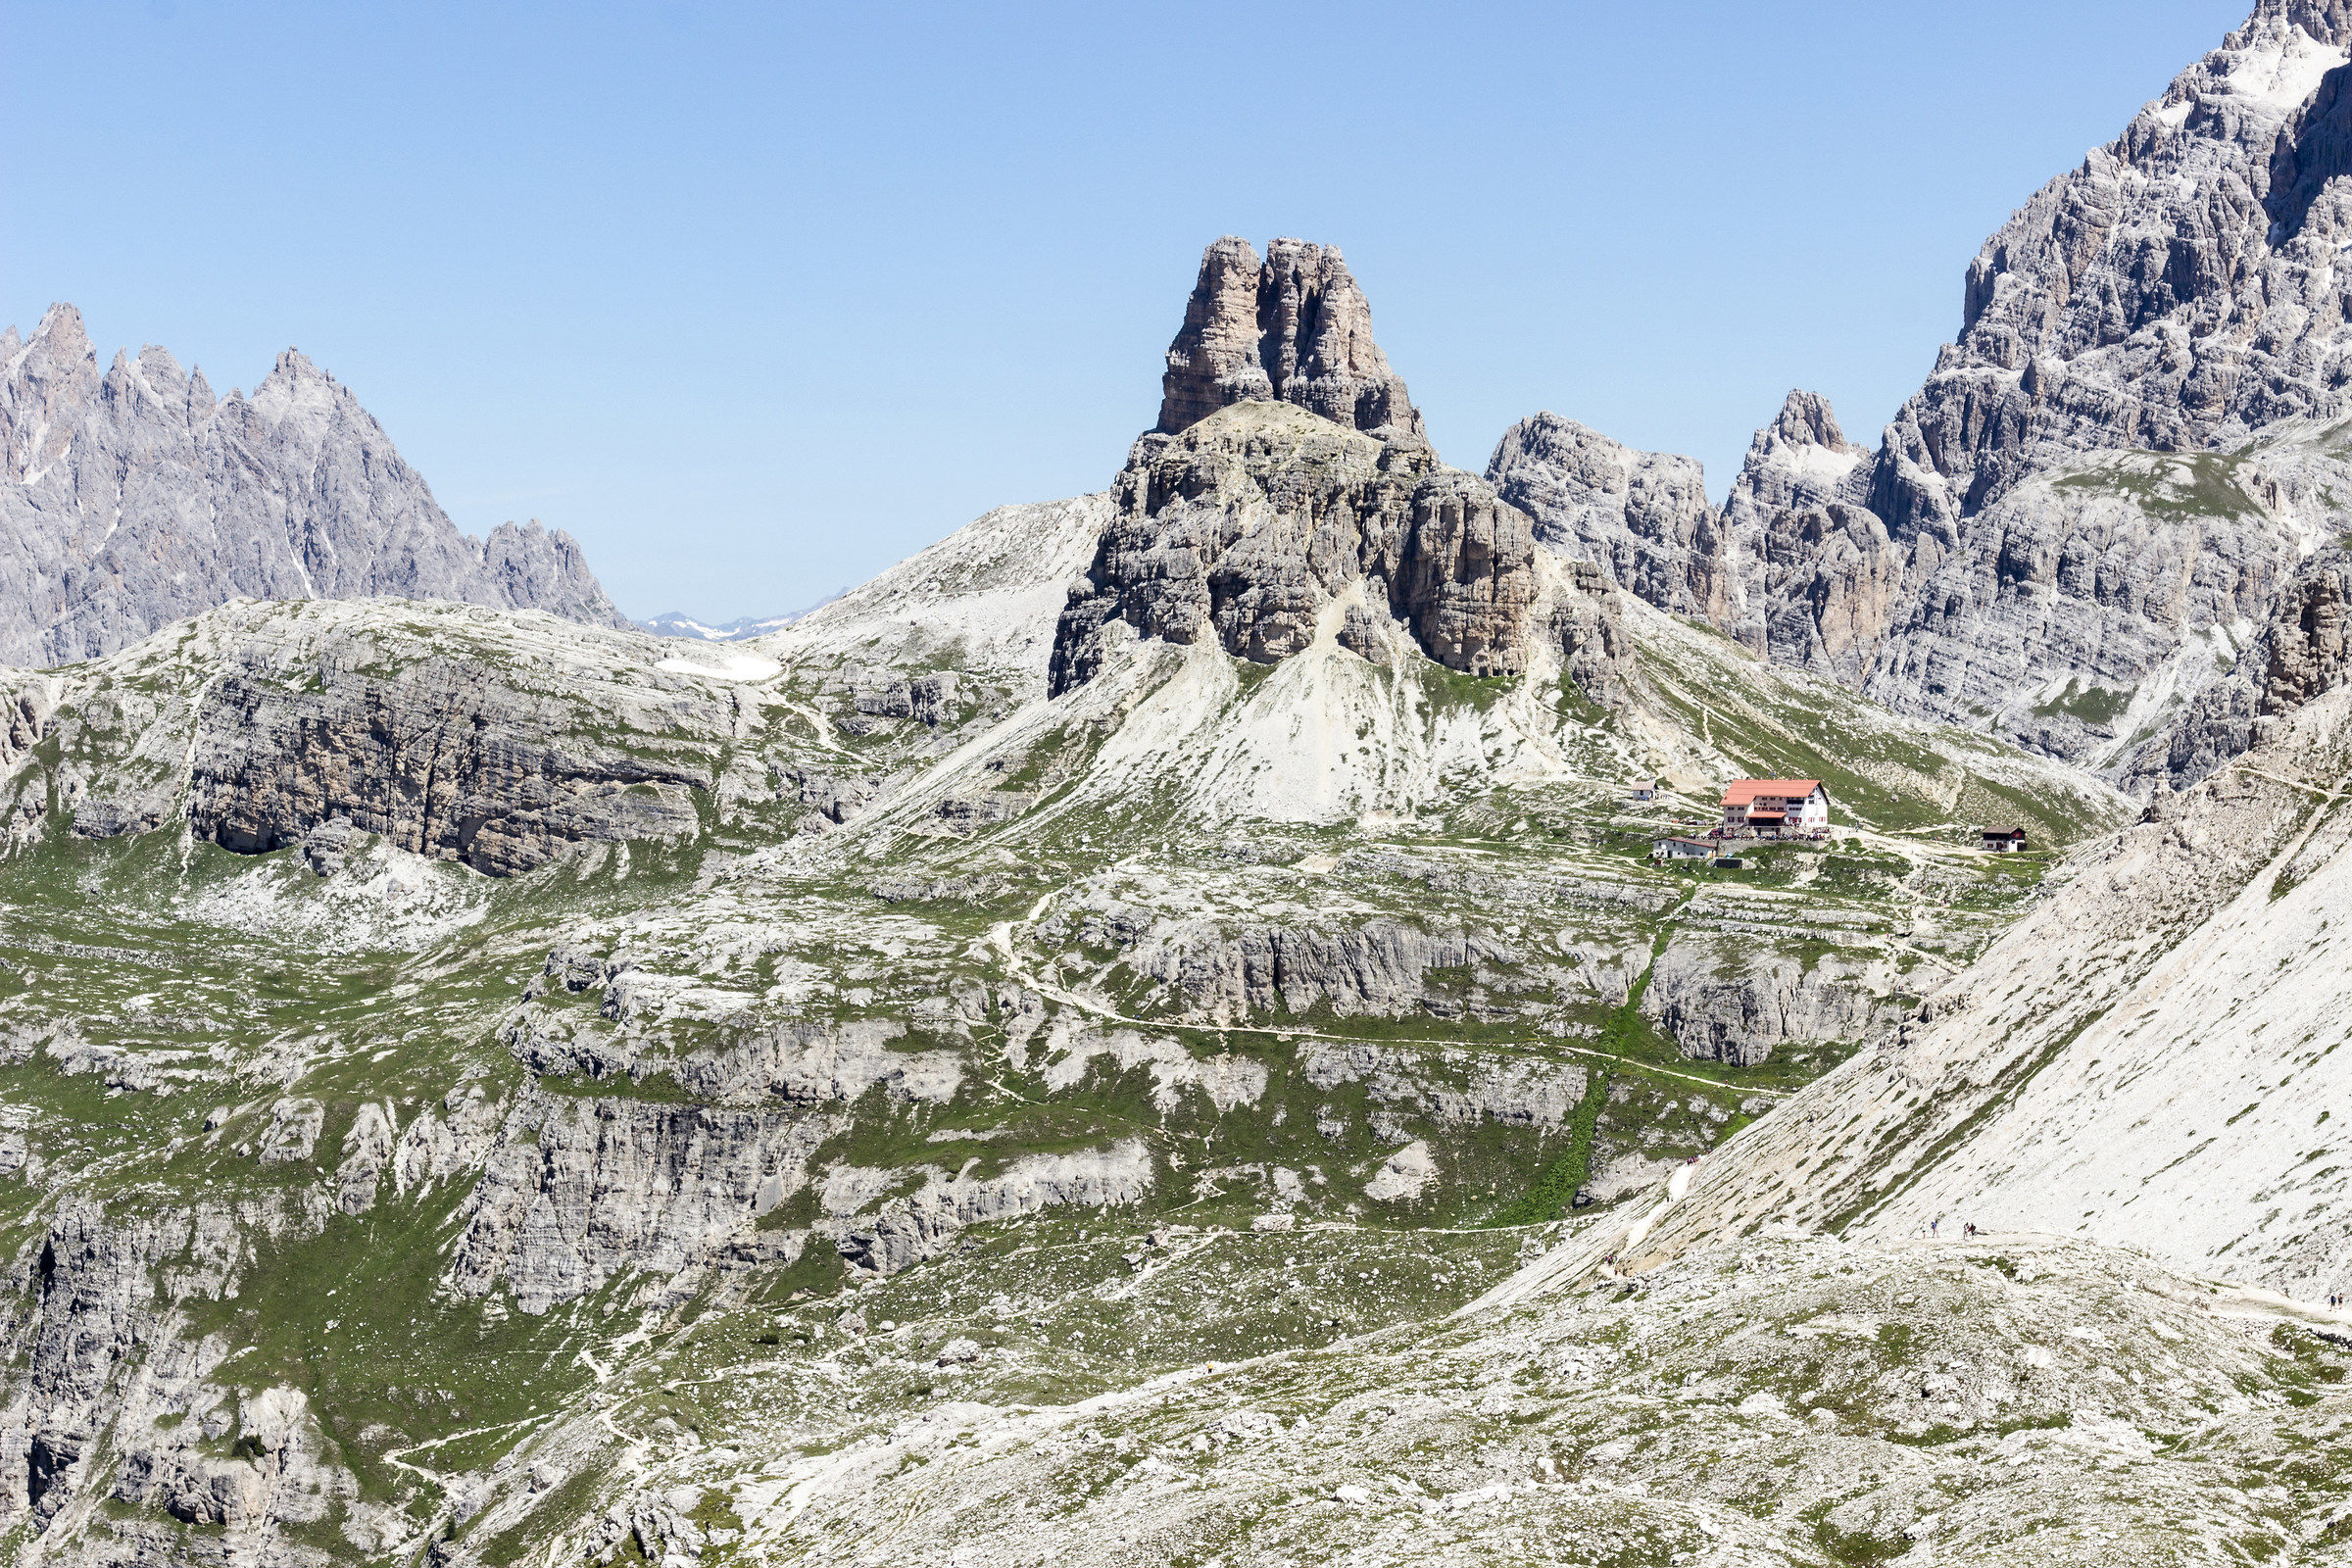 View of the Rif. Locatelli by fork Lavaredo...